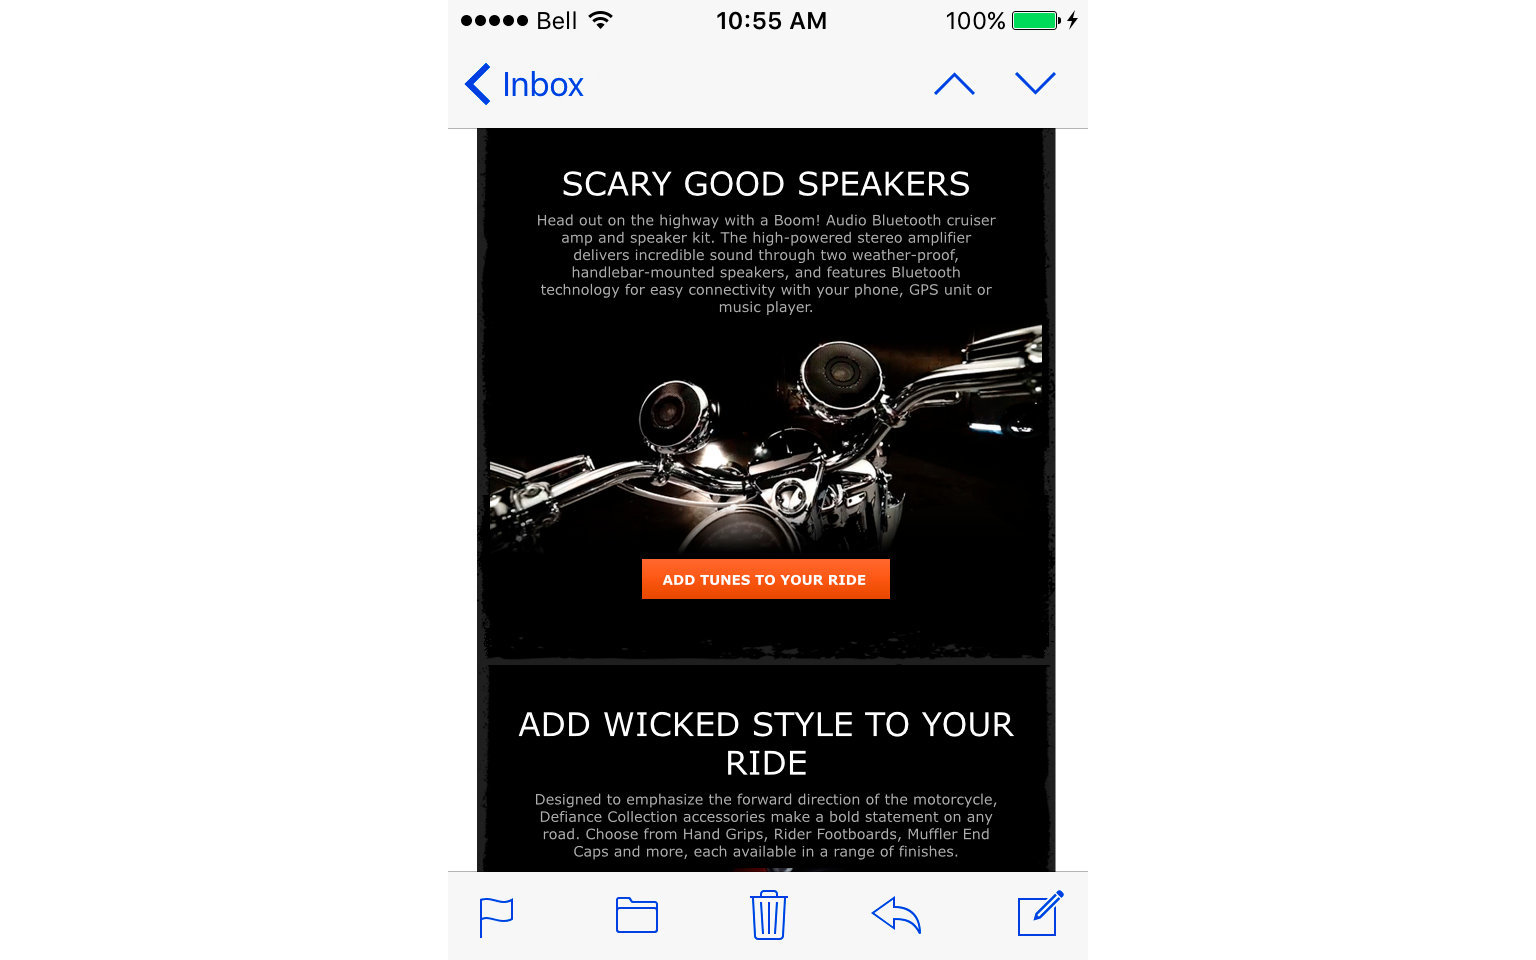 HARLEY-DAVIDSON ACCESSORIES EMAIL  7/10